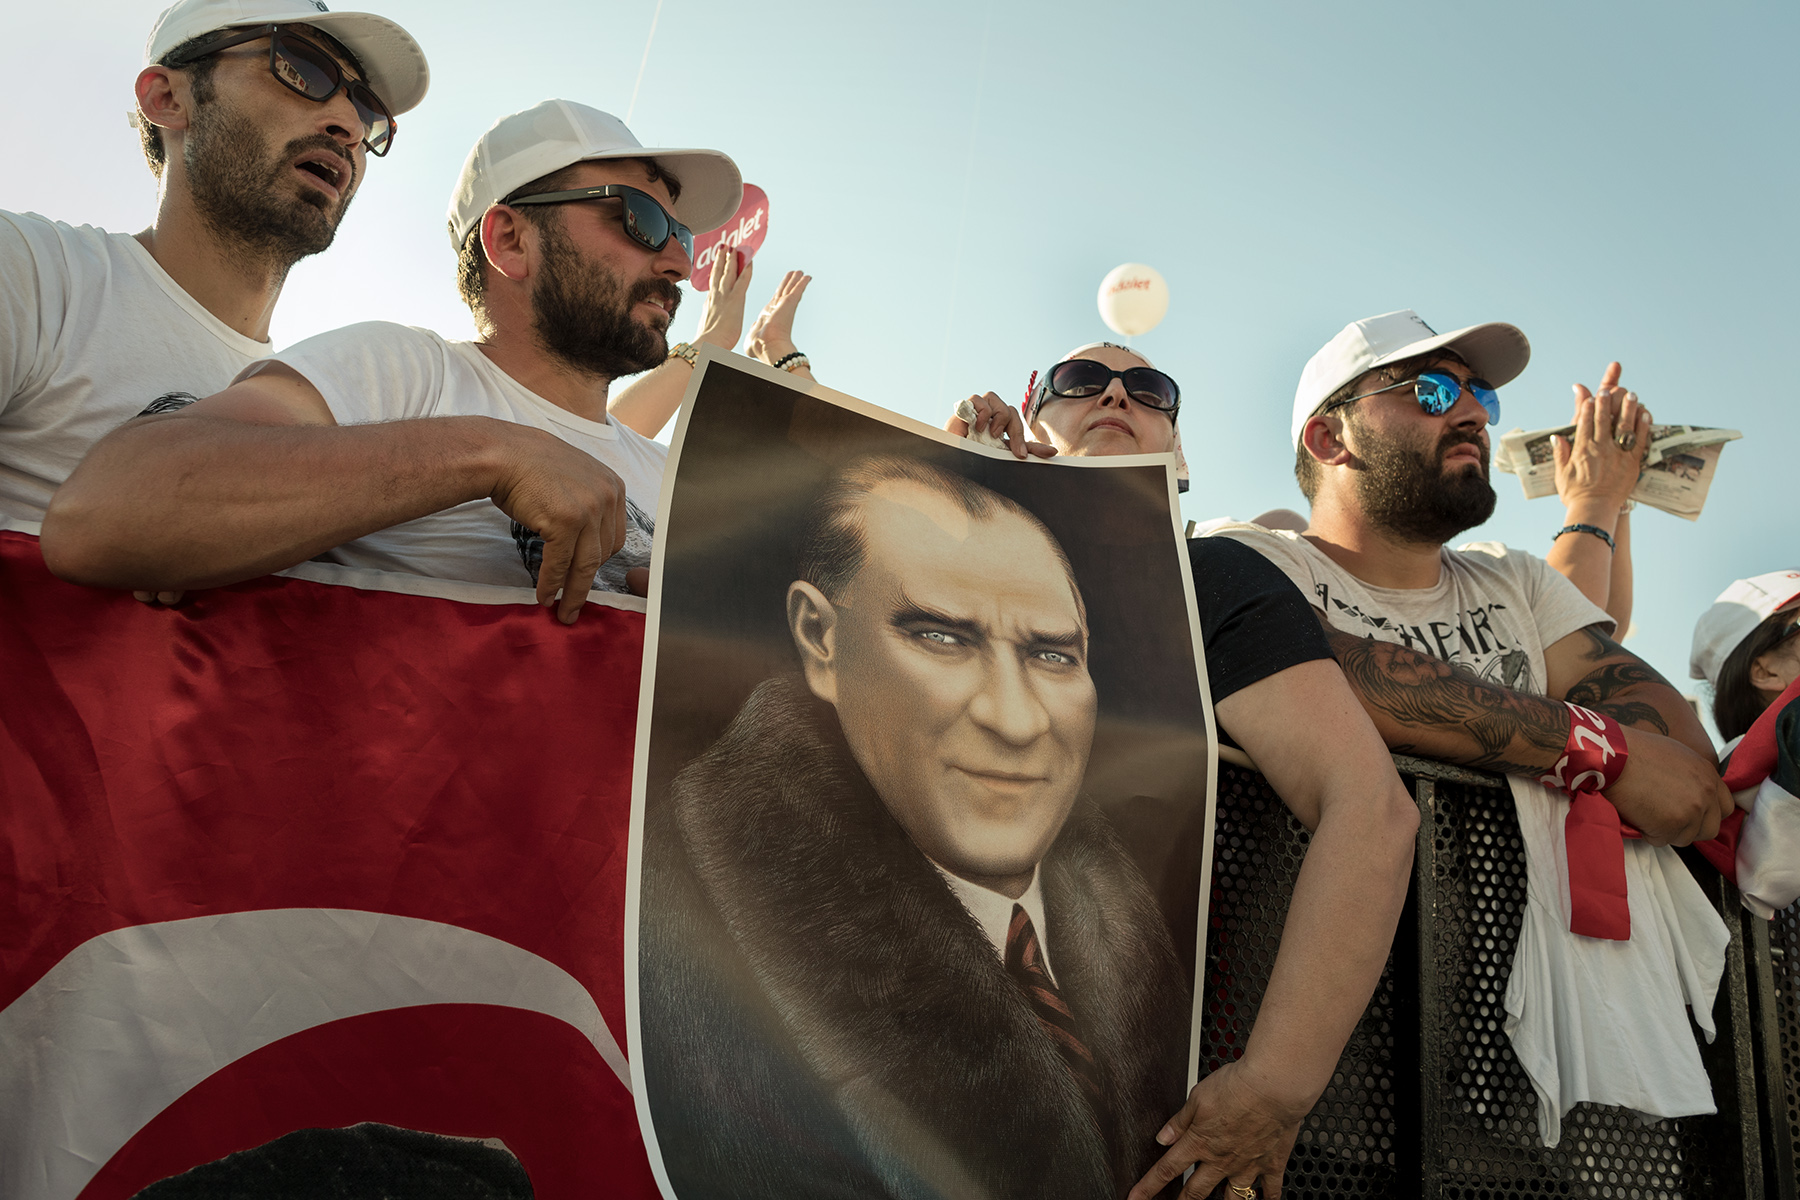 Supporters hold a portrait of Ataturk as Turkey's main opposition Republican People Party (CHP) leader Kemal Kilicdaroglu speaks at the 'Justice Rally' in Istanbul, Turkey, Sunday, July 9, 2017. The event concludes Kilicdaroglu's 25 days March from Ankara to Istanbul for accusing Erdogan of interference in court case of Enis Berberoglu, a CHP deputy who was sentenced to 25 years in jail for espionnage.